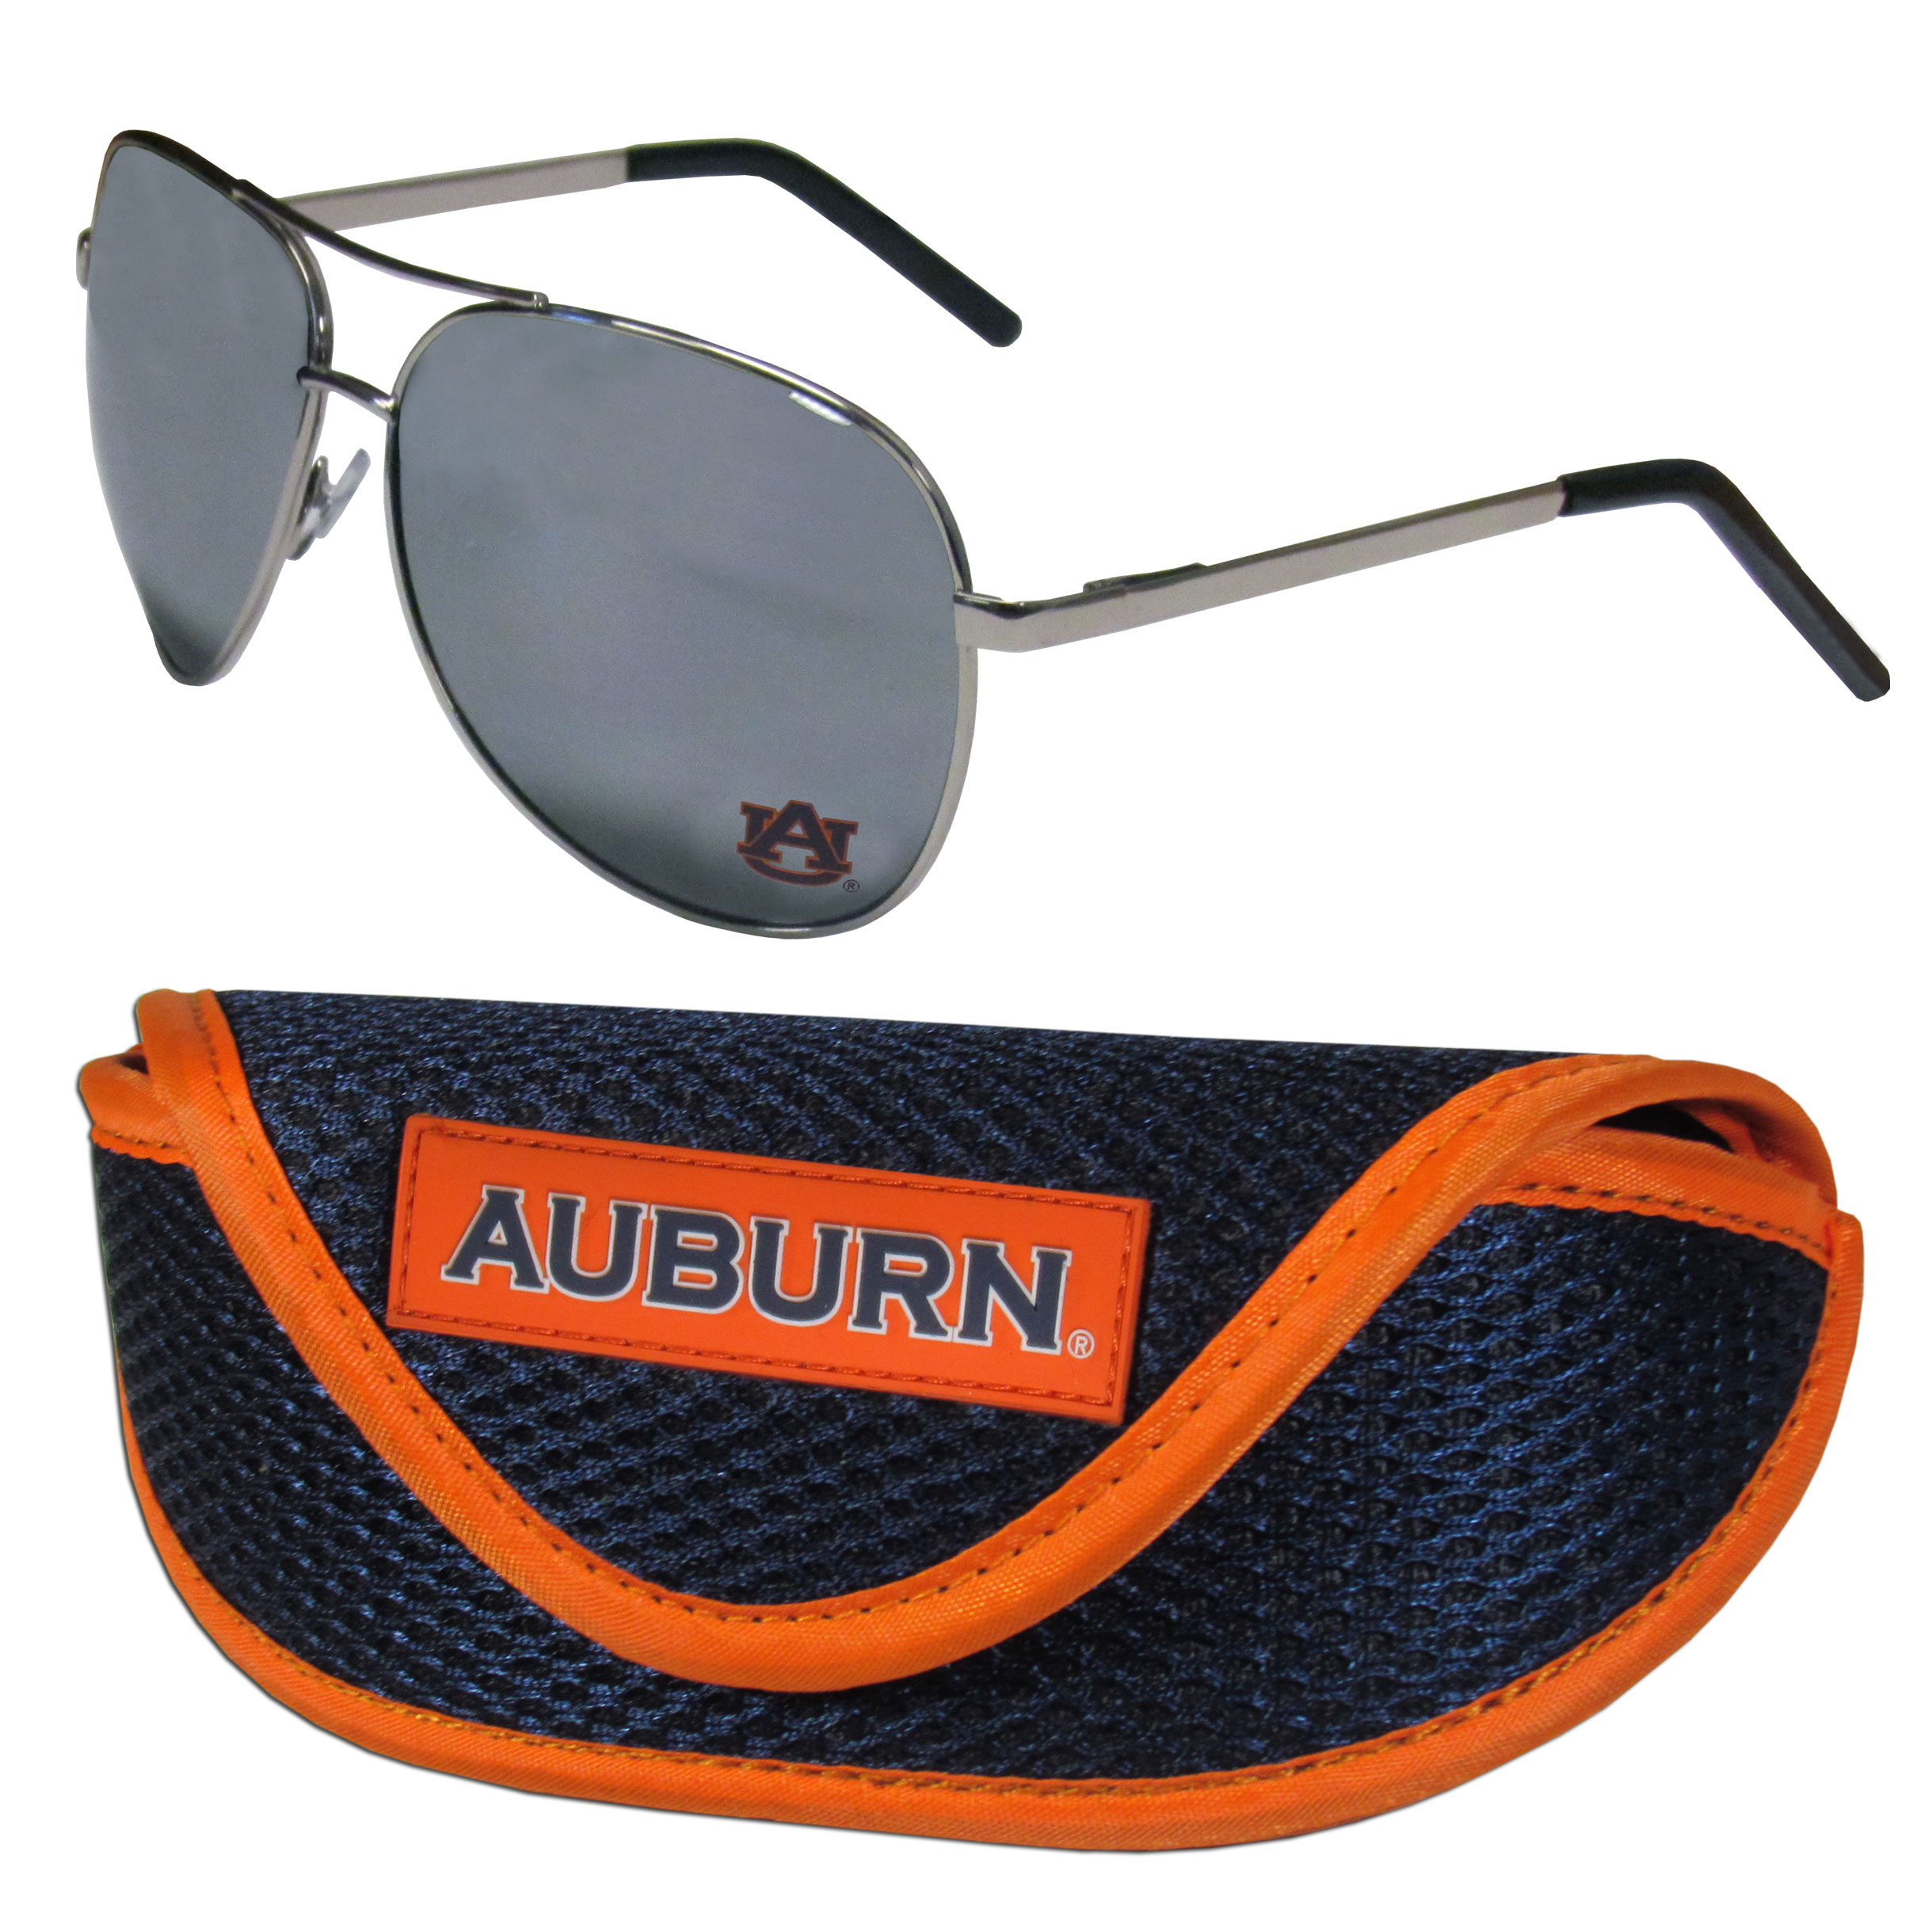 Auburn Tigers Aviator Sunglasses and Sports Case - Aviator sunglasses are truly an iconic retro fashion statement that never goes out-of-style. Our Auburn Tigers  aviator sunglasses pair this classic look with your love of the game. The iridium coated lenses reduce glare while driving, boating, golfing and their 100% UVA/UVB rating provides you with the maximum UV protection for all your outdoor activities. A millennial favorite, these affordable designer frames are the perfect eyewear accessory for a sports fan that is looking for high-quality at an affordable price. The durable, flex hinged frames are tough enough for hiking and camping or if you prefer sun bathing by the pool or on the beach these shades will really stand the test of time. The sunglasses come with a sporty case which has a large team logo on the lid that will make even the most die-hard fan proud!